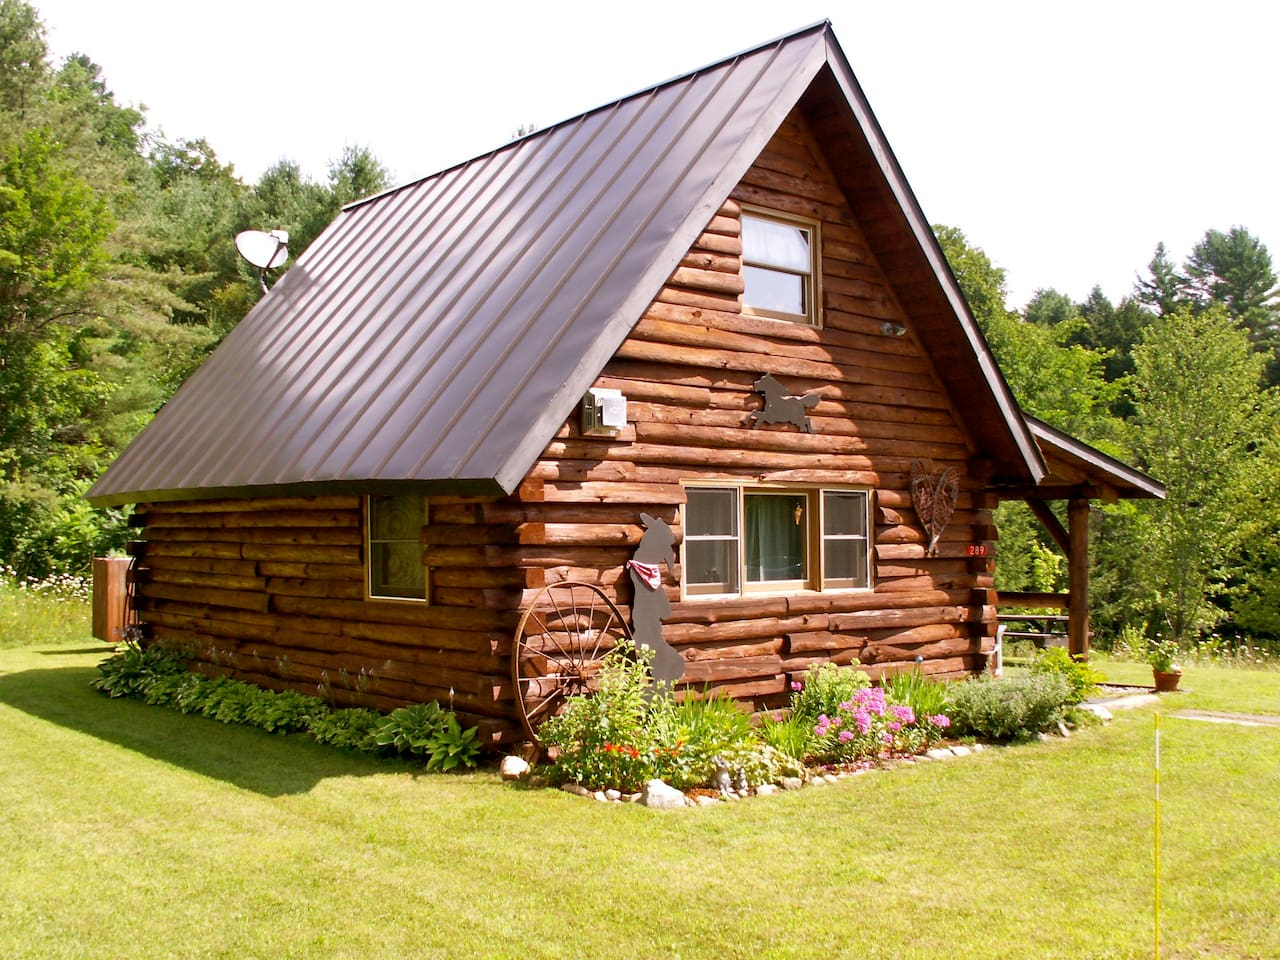 rent lake log houses southern sale in bennington north on cottages vermont northern for cabins champlain